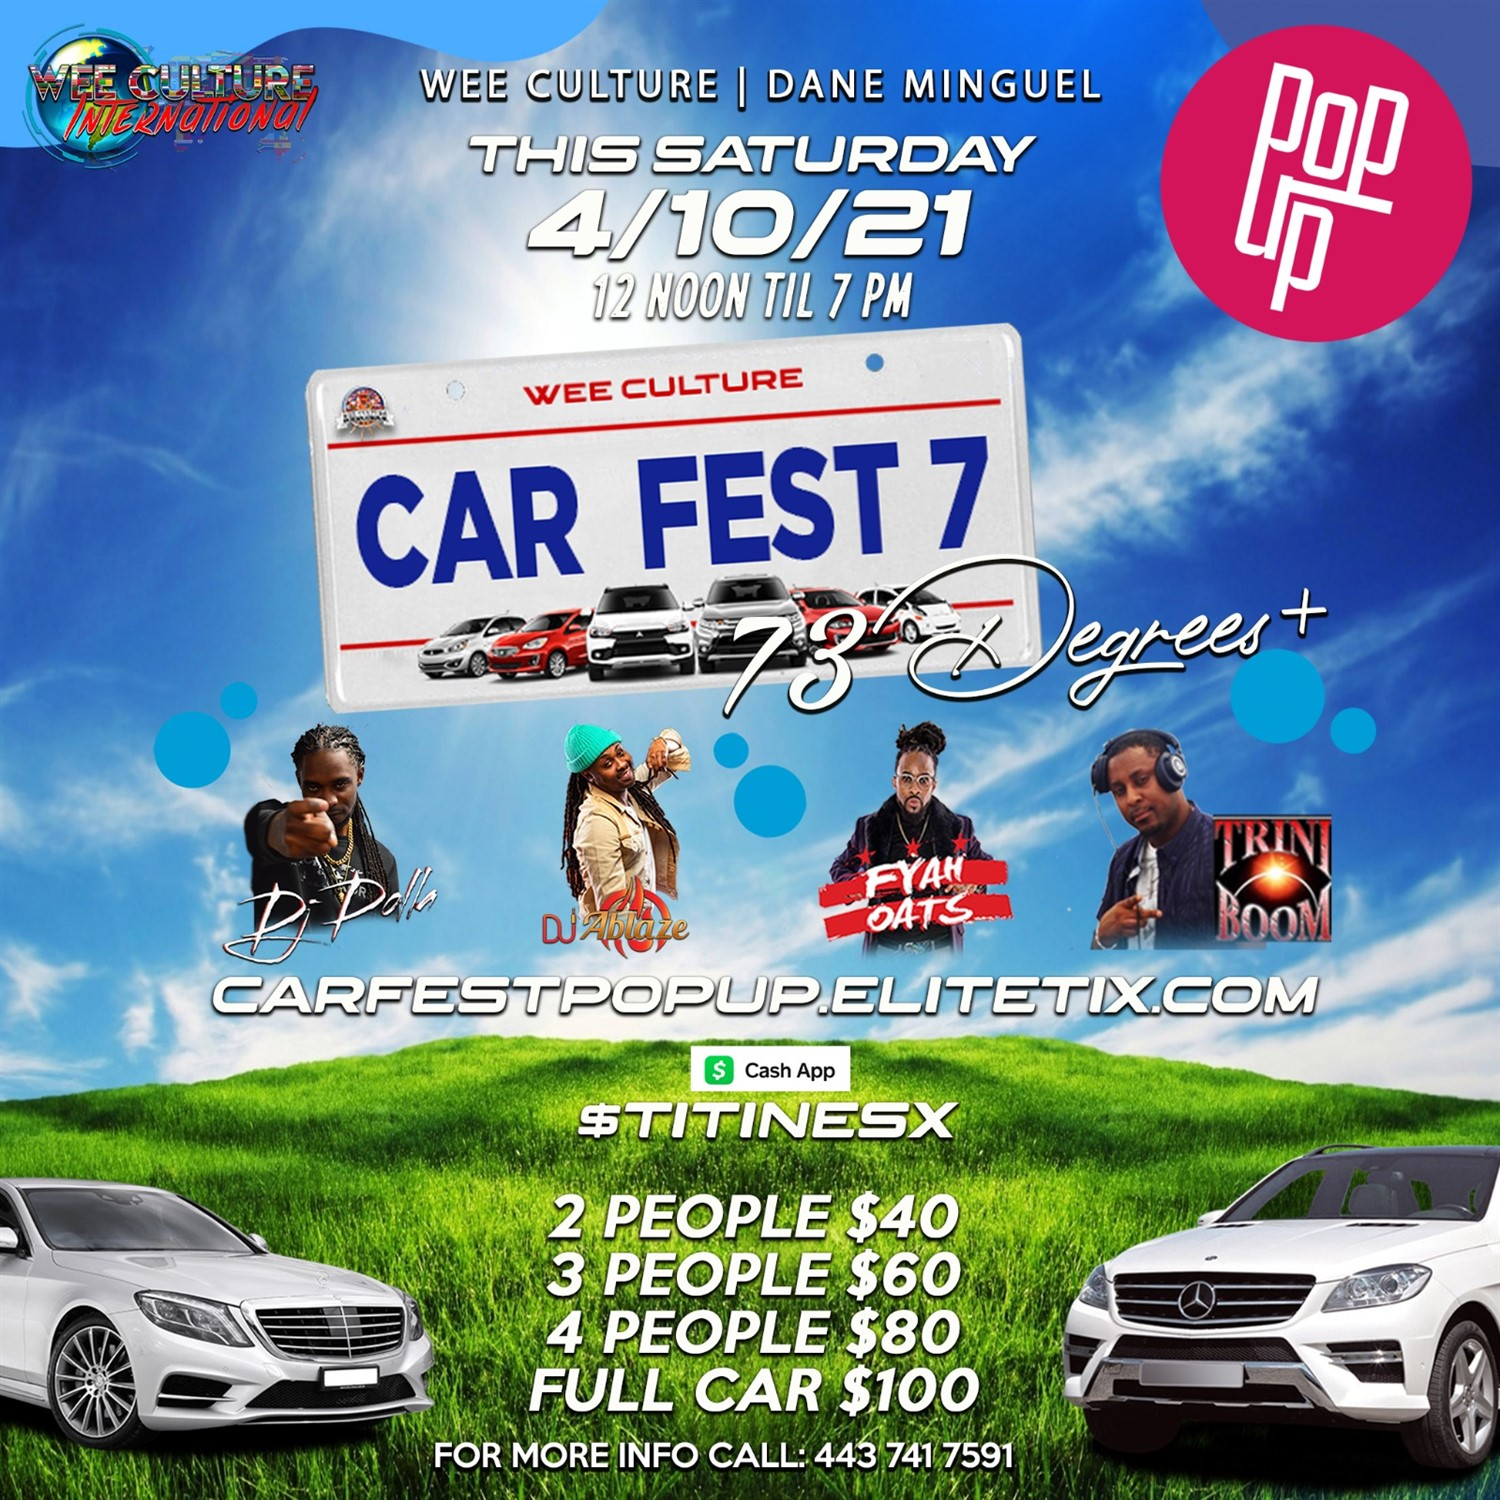 Car Fest Pop Up image